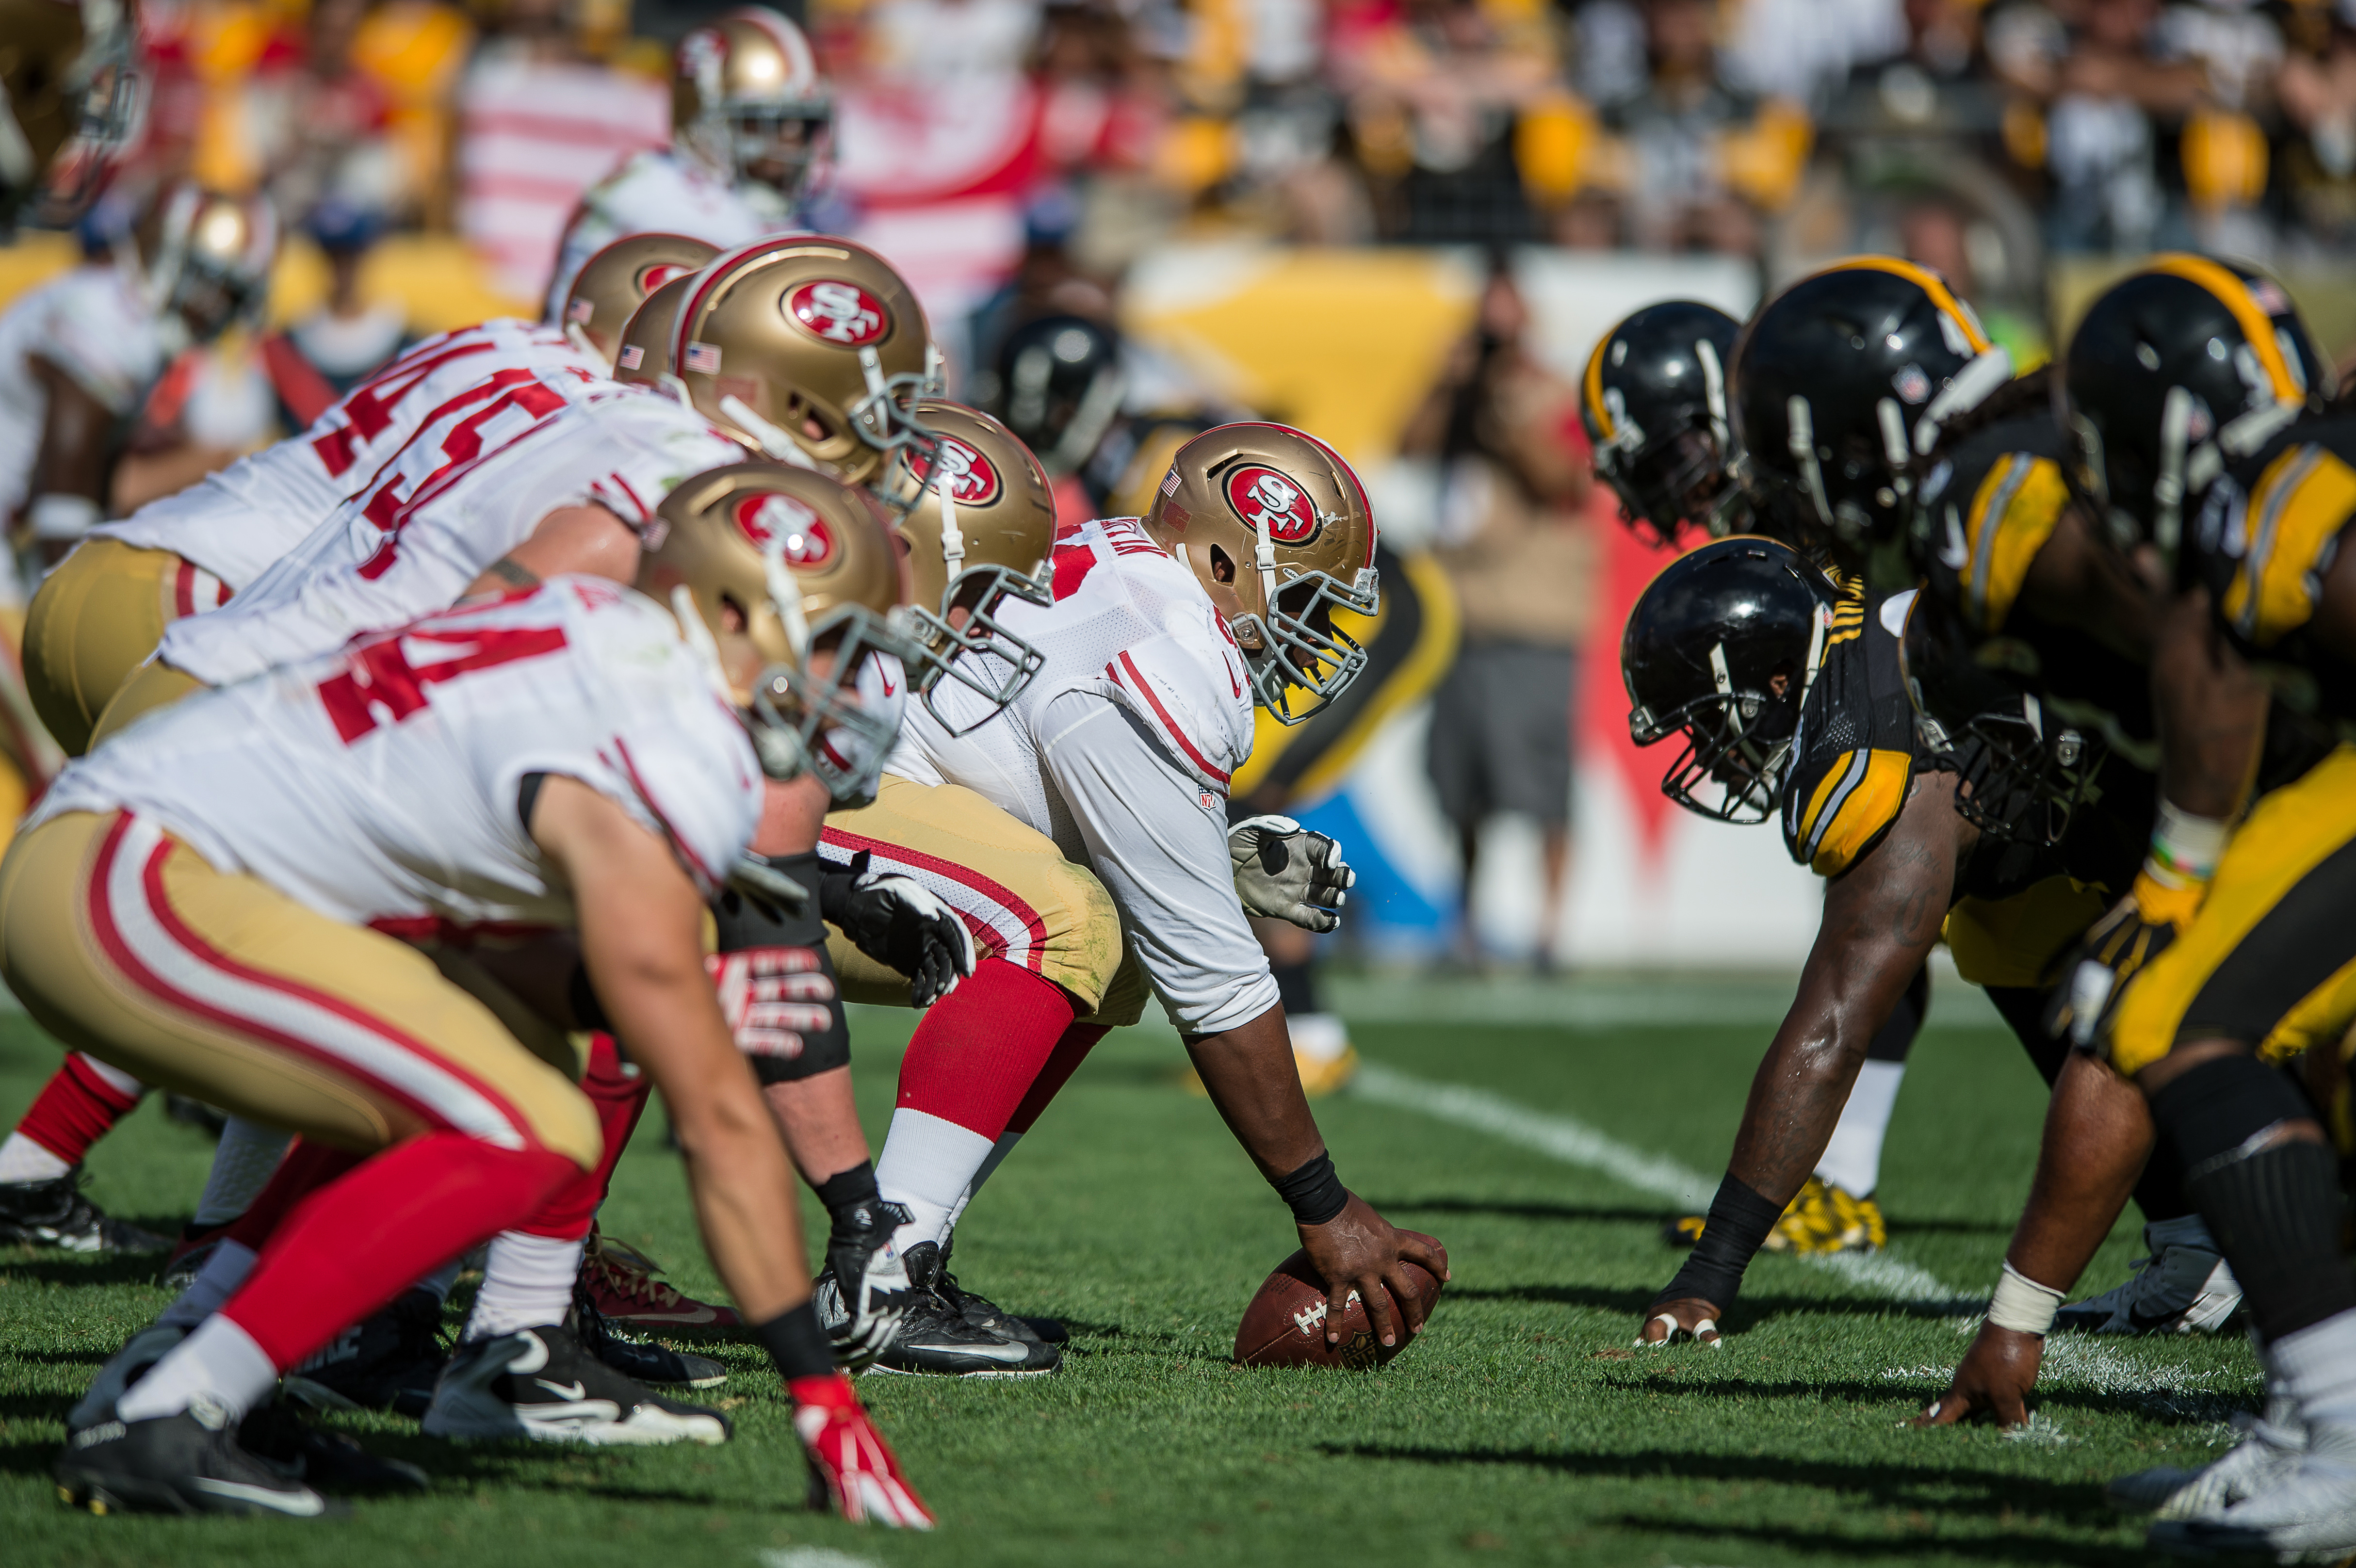 NFL: SEP 20 49ers at Steelers